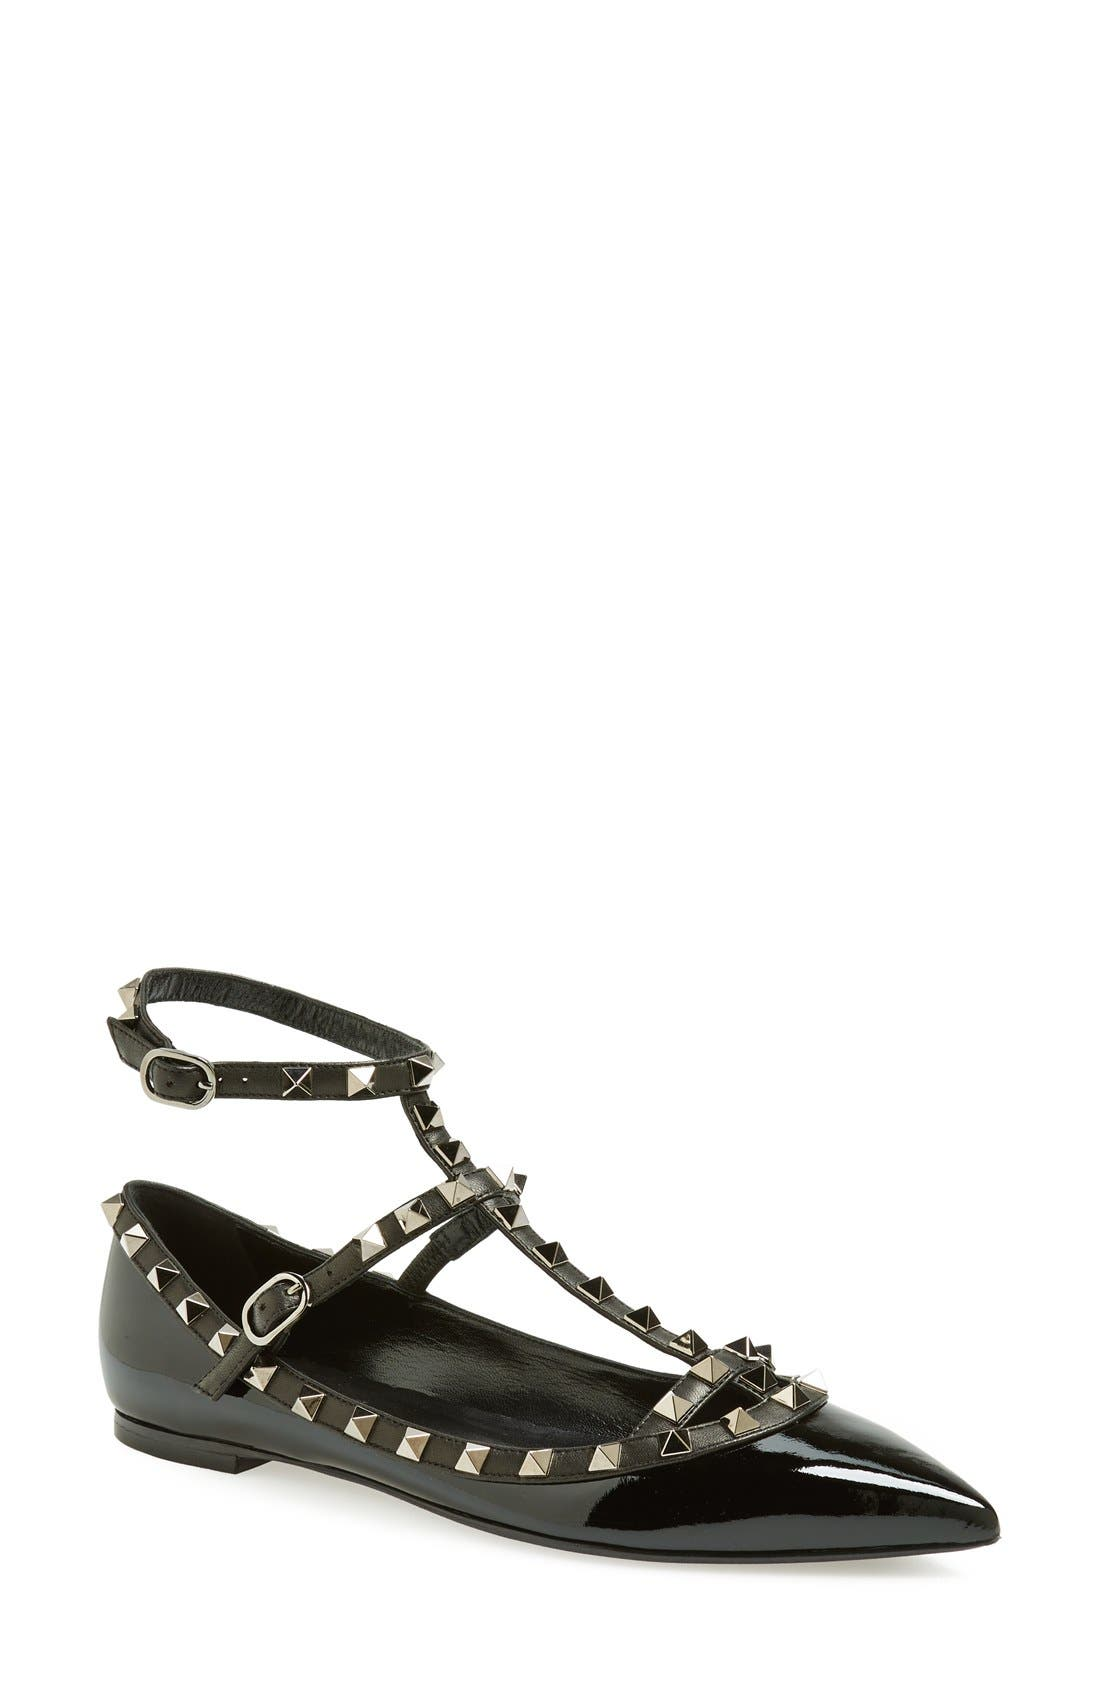 Alternate Image 1 Selected - Valentino 'Noir Rockstud' Double Ankle Strap Patent Leather Pointy Toe Flat (Women)